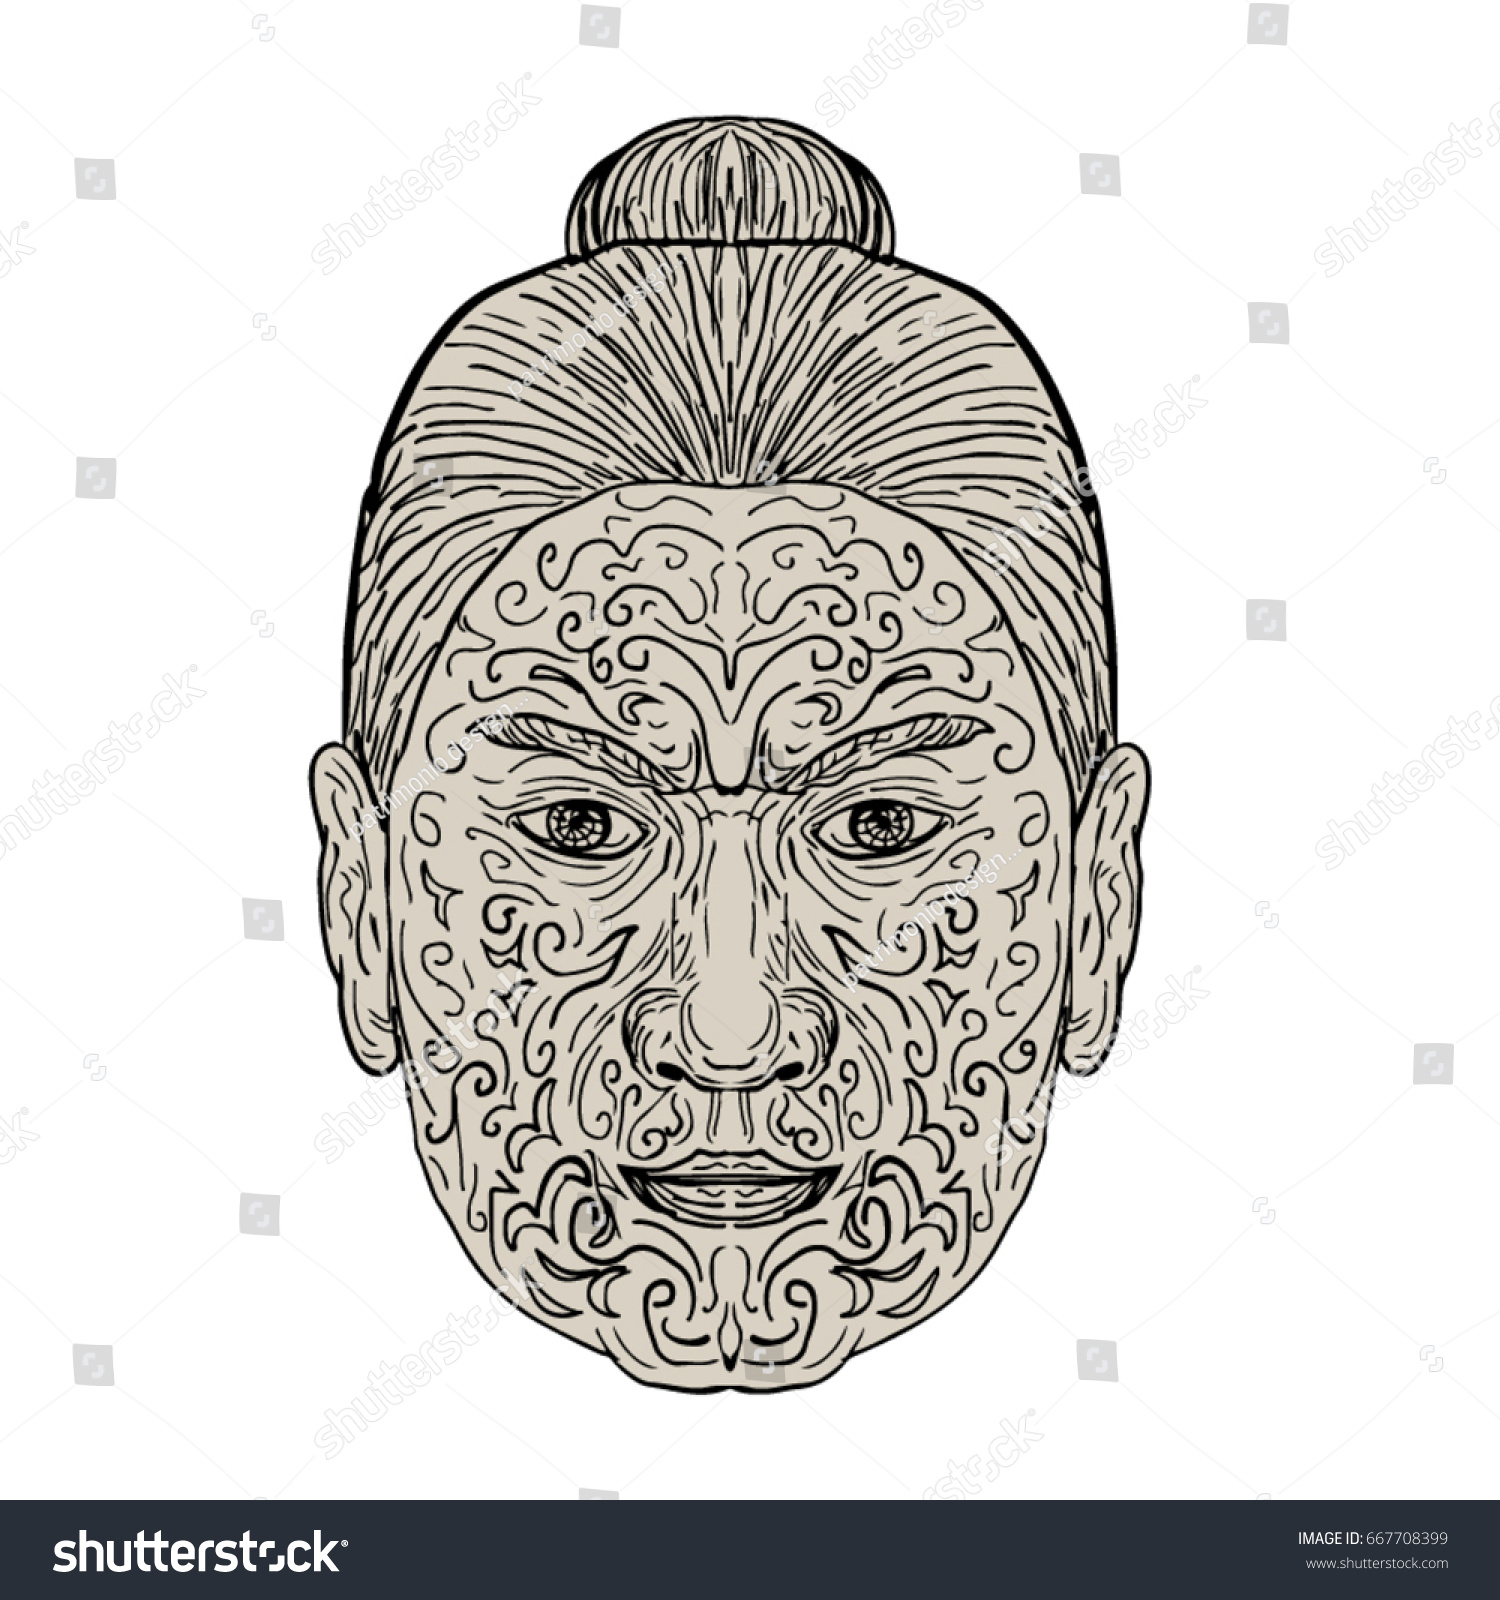 Magnificent Maori Krieger Photo Of Tration Of A Face With Moko Facial